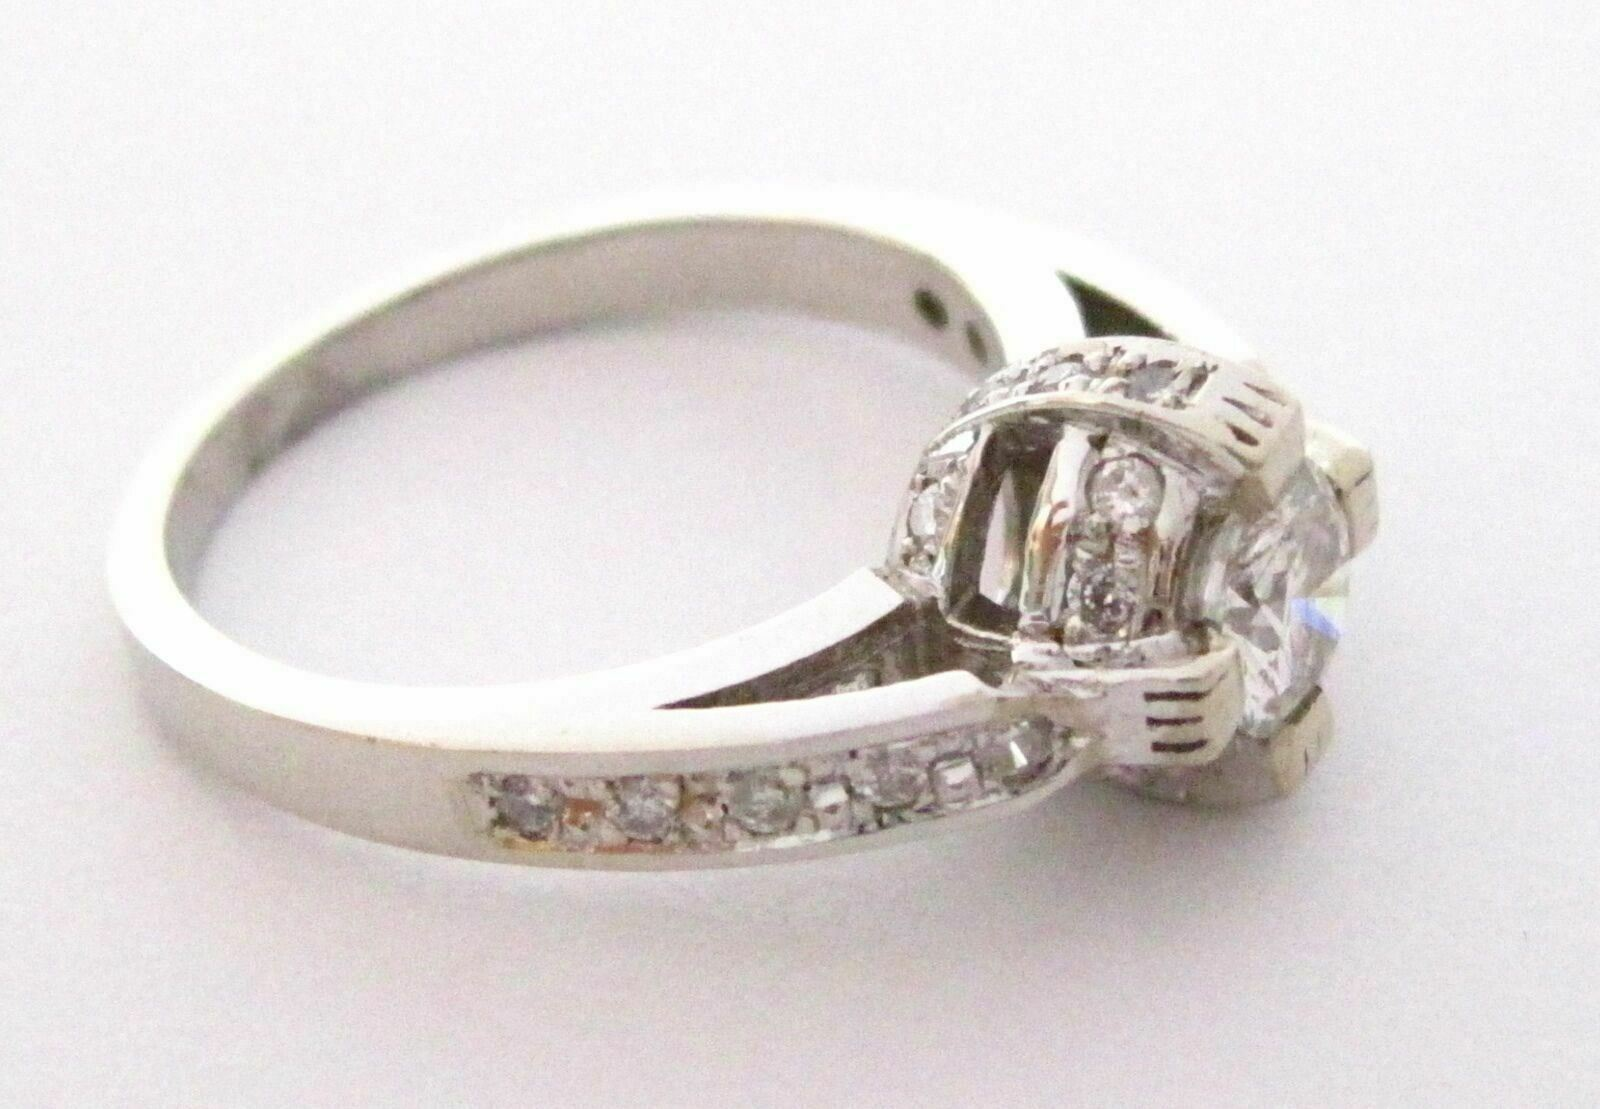 .83 TCW Round Brilliant Cut Diamond Cocktail Ring Size 7.5 G SI1 14k White Gold